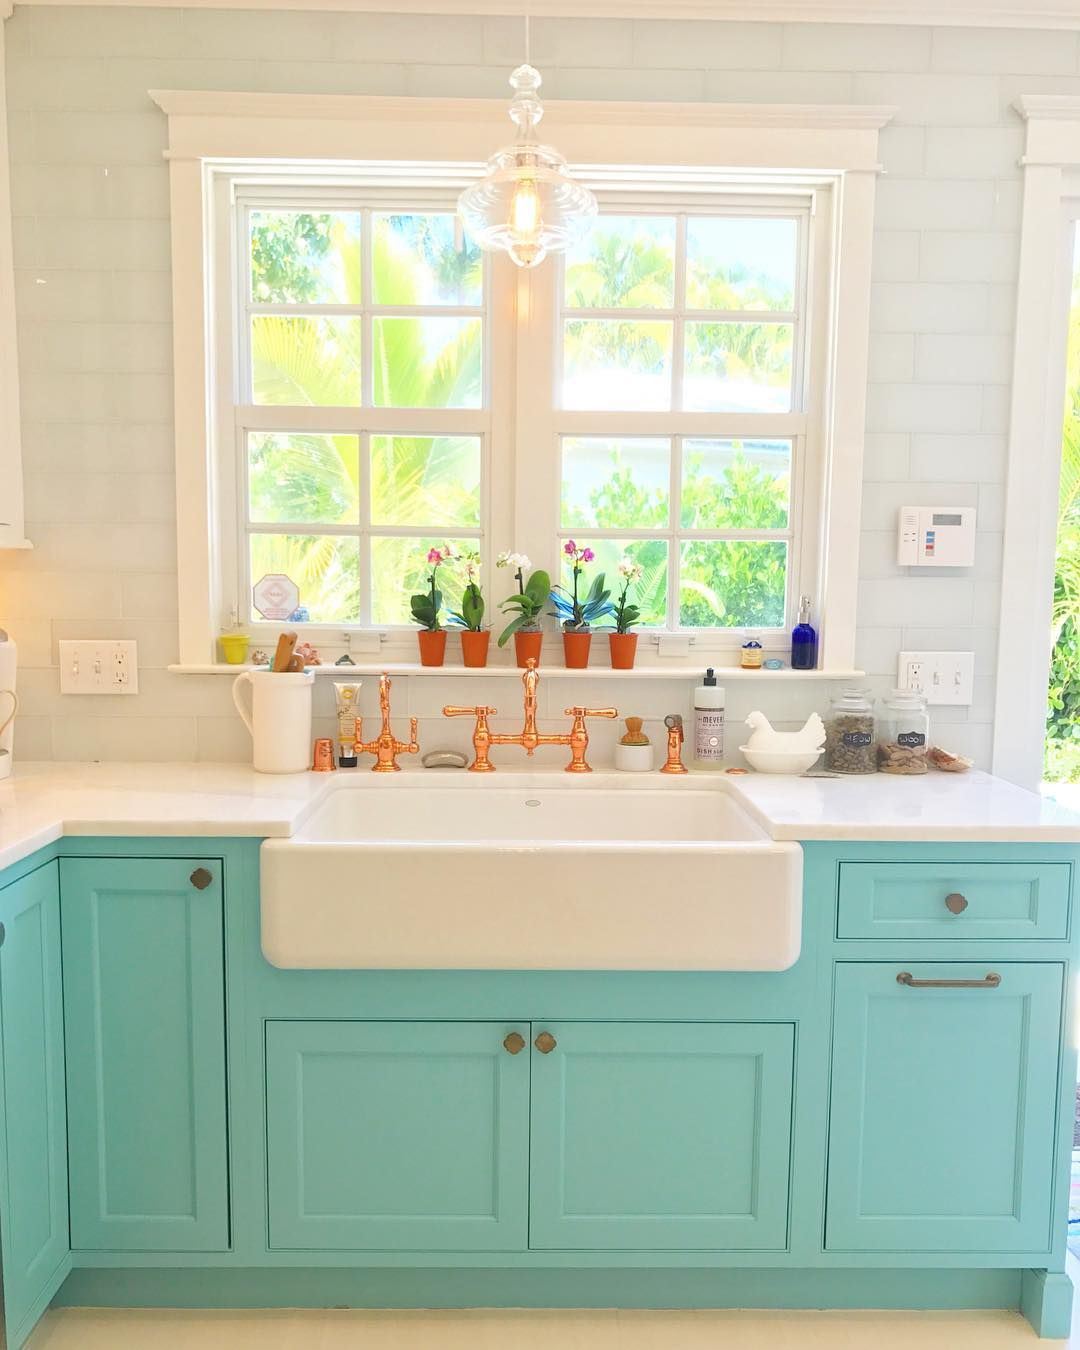 Pin On Remodel Ideas